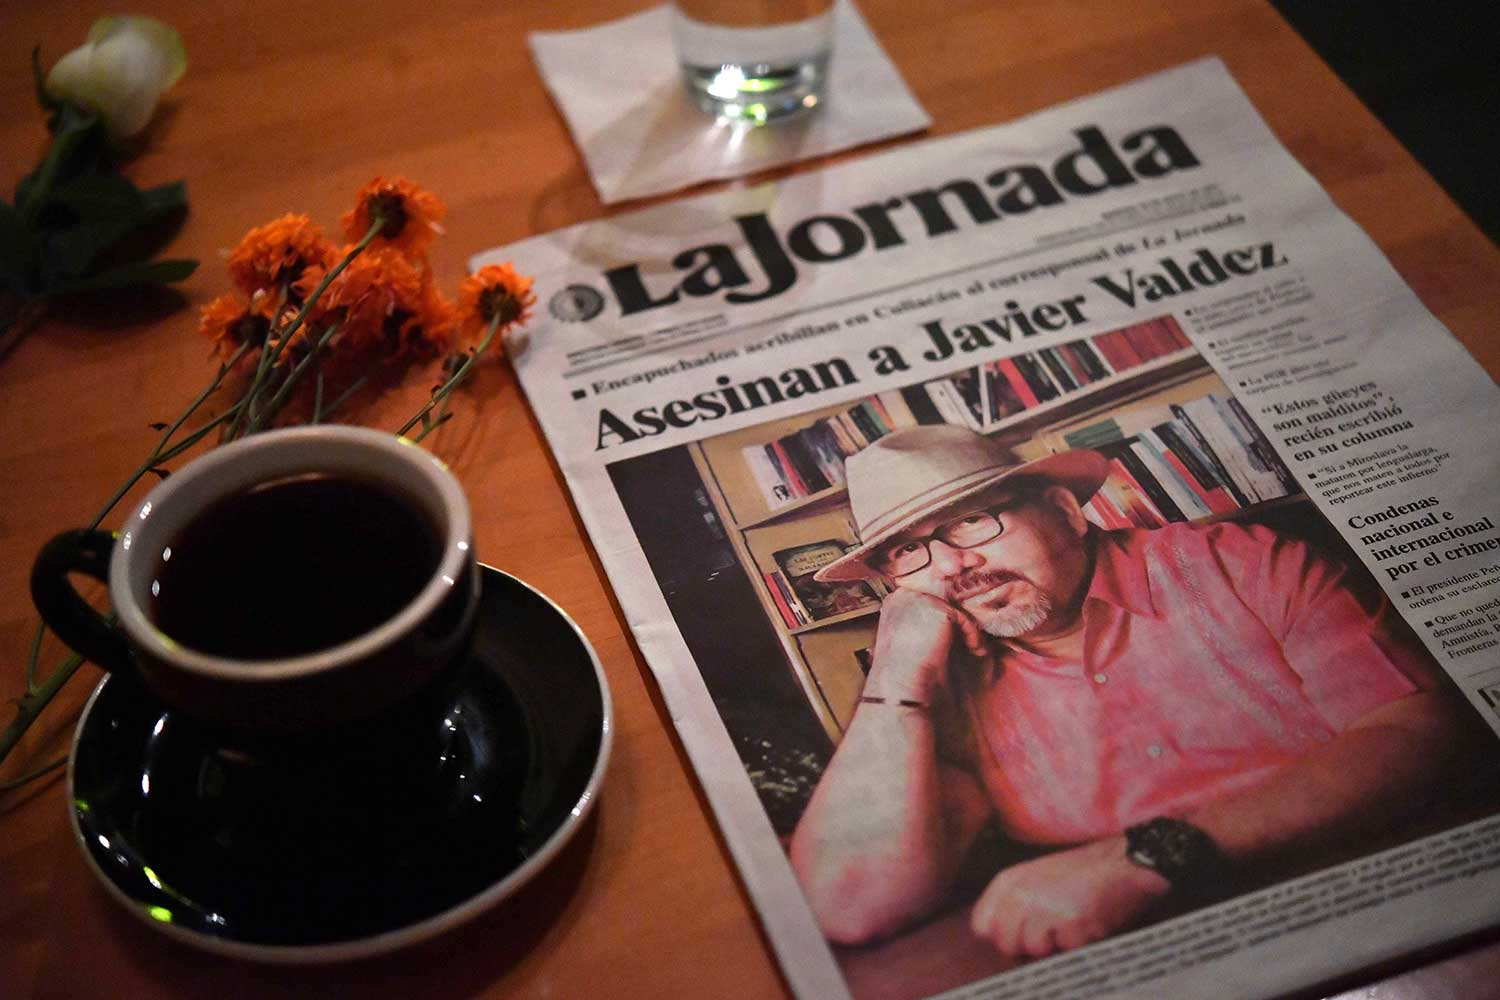 A tribute to Javier Valdez Cárdenas is left at a café in Culiacan that the Mexican journalist used to visit. Valdez was shot dead outside his office in May 2017. (AFP/Yuri Cortez)